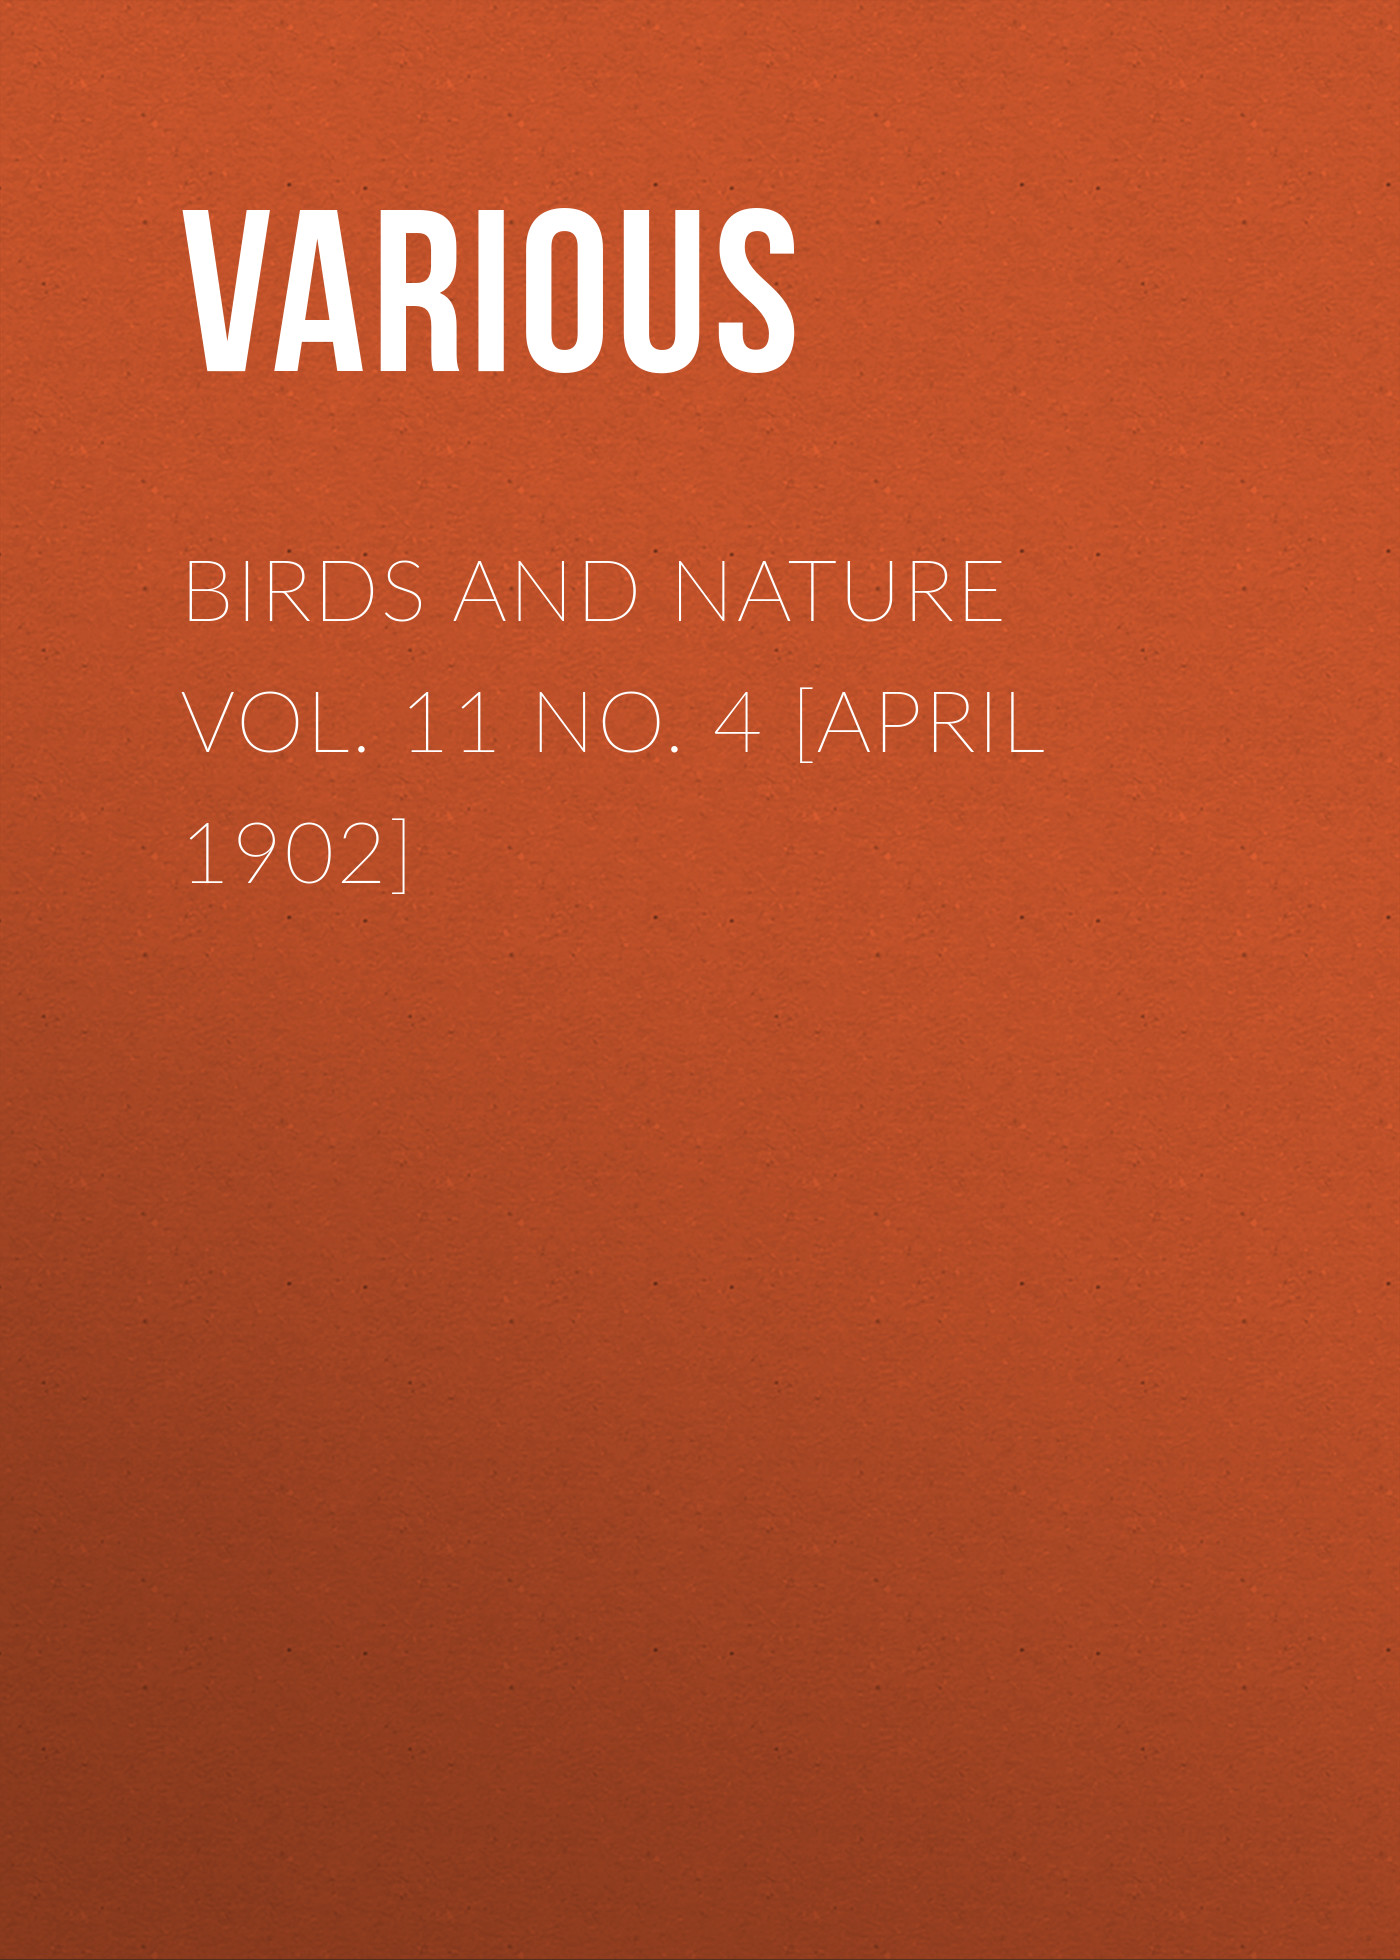 все цены на Various Birds and Nature Vol. 11 No. 4 [April 1902]